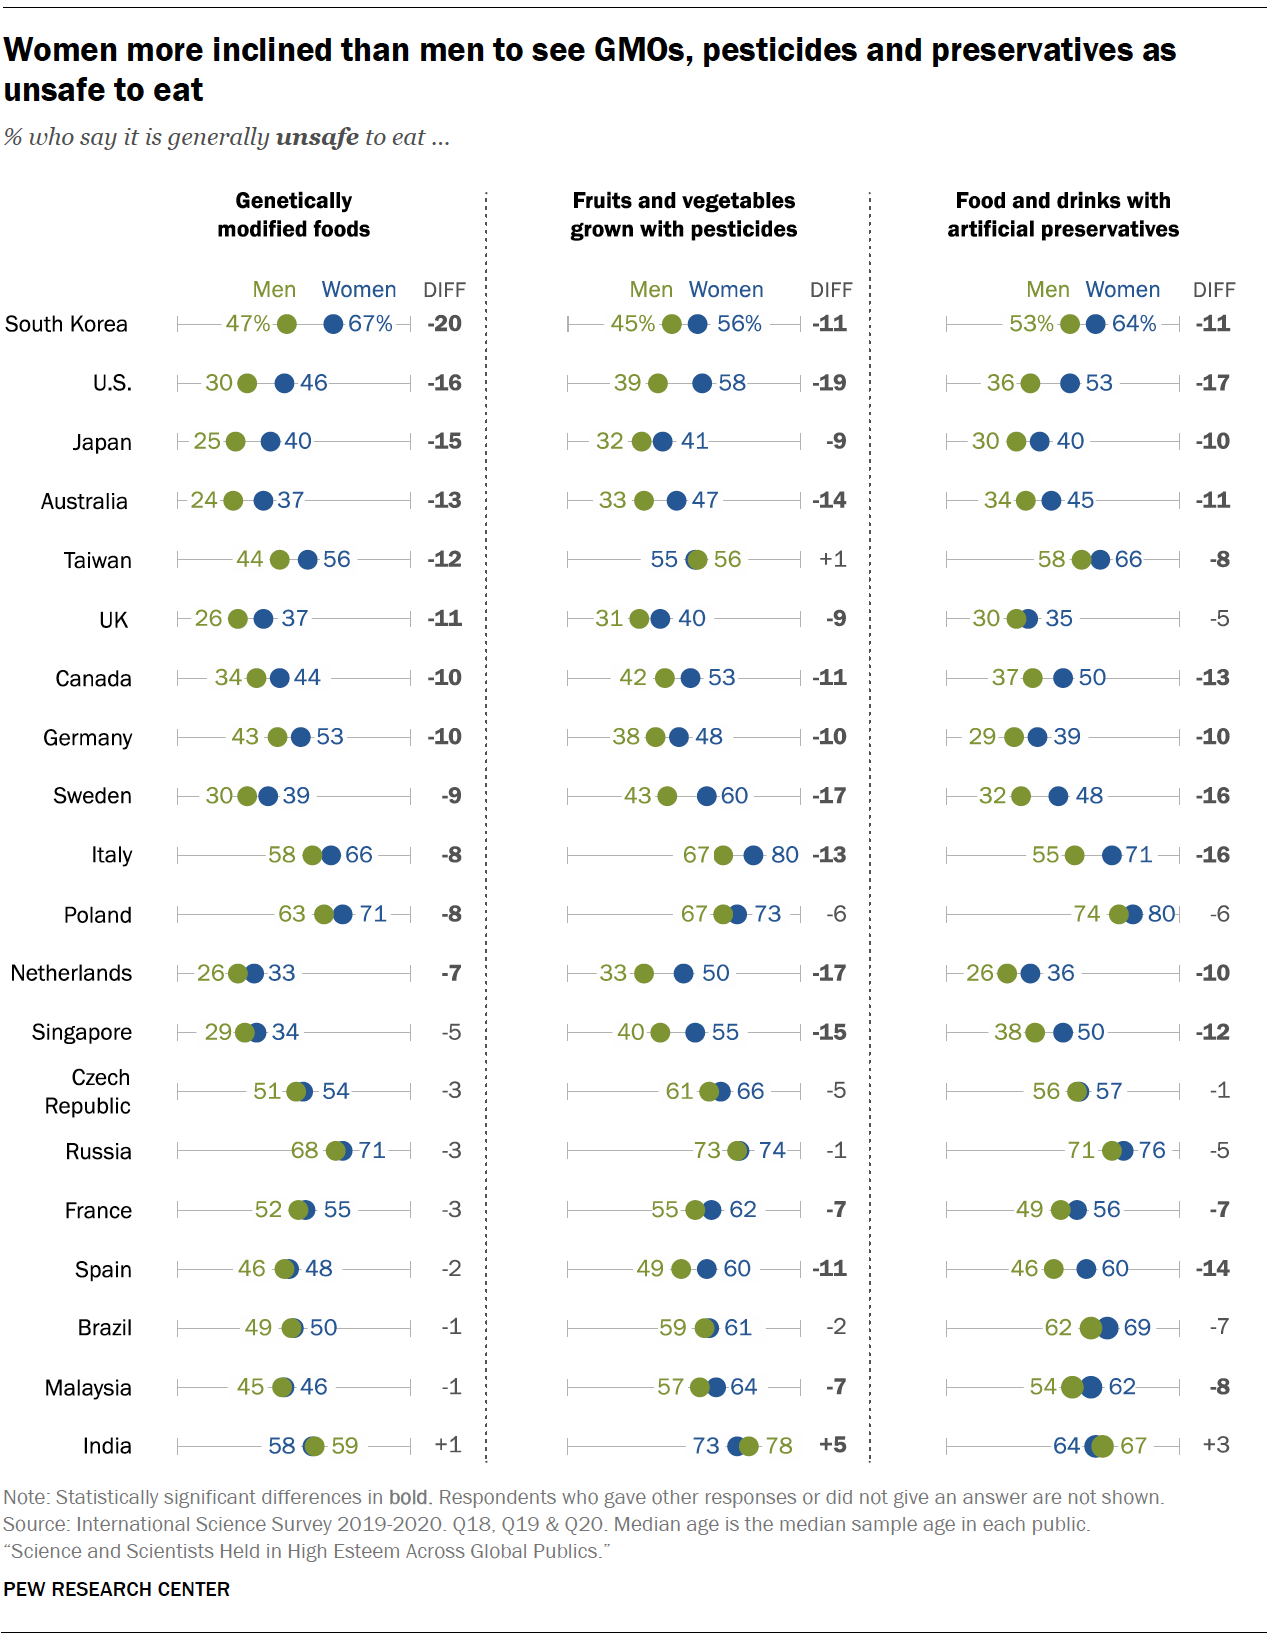 Chart shows women more inclined than men to see GMOs, pesticides and preservatives as unsafe to eat